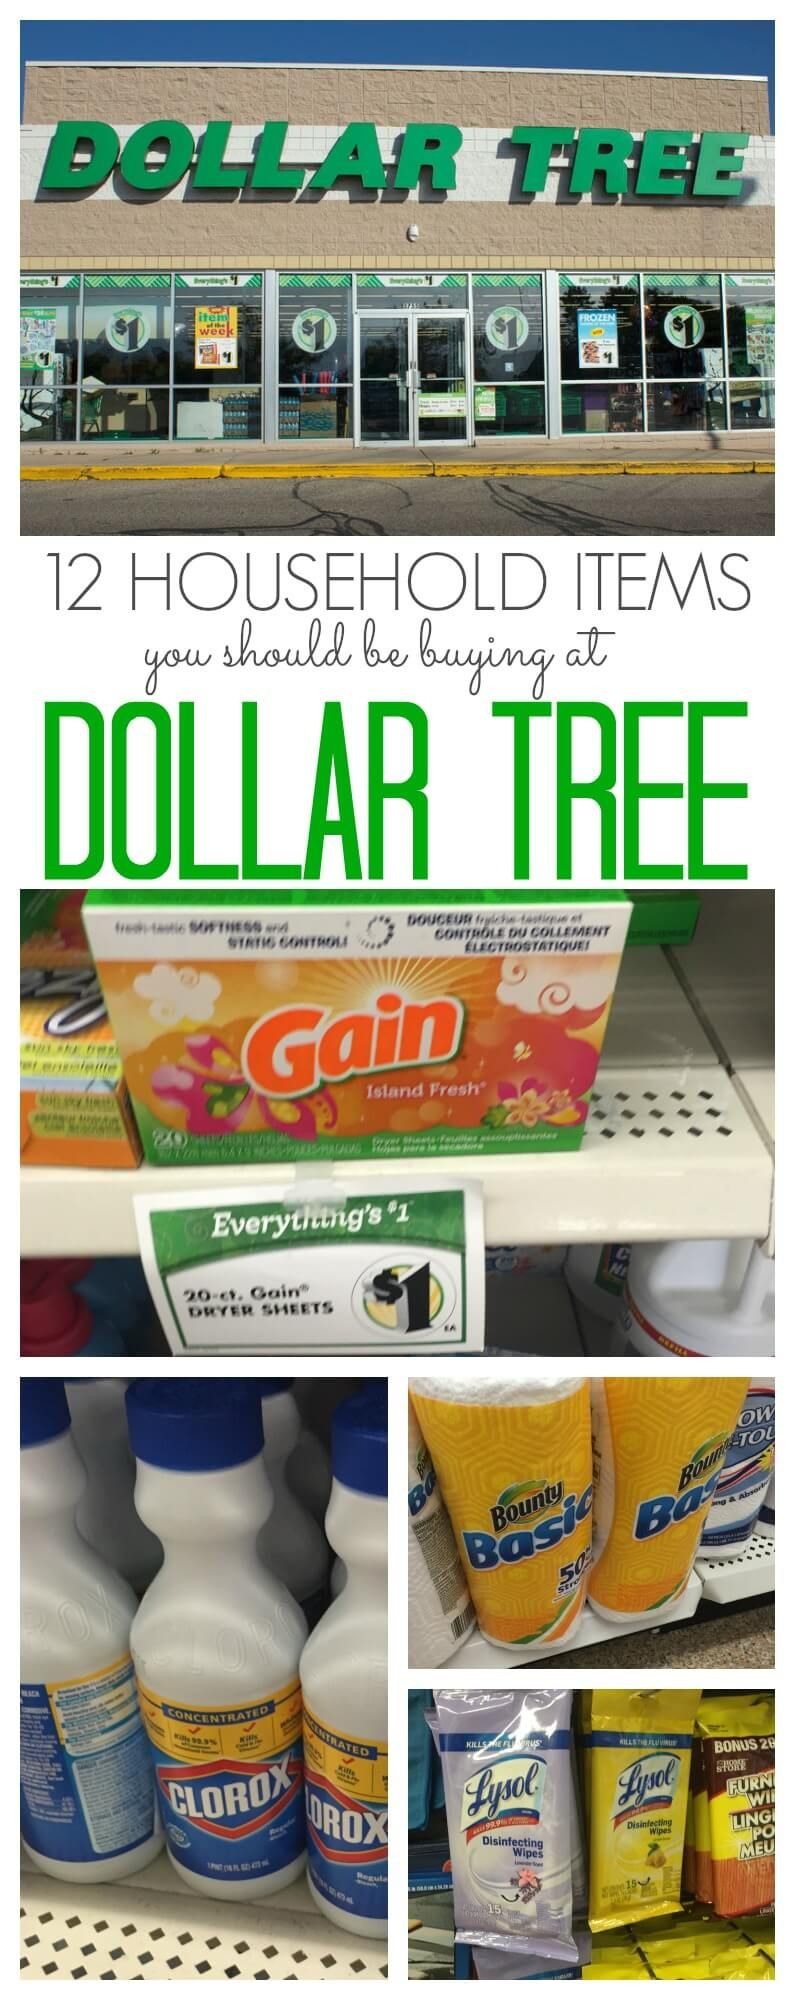 One of the stores you should be shopping at is Dollar Tree. Dollar Tree can be great for groceries, kids items and more. Check out these 10 household items you should buy at Dollar Tree to save. via @Passion4Savings #householdhacks